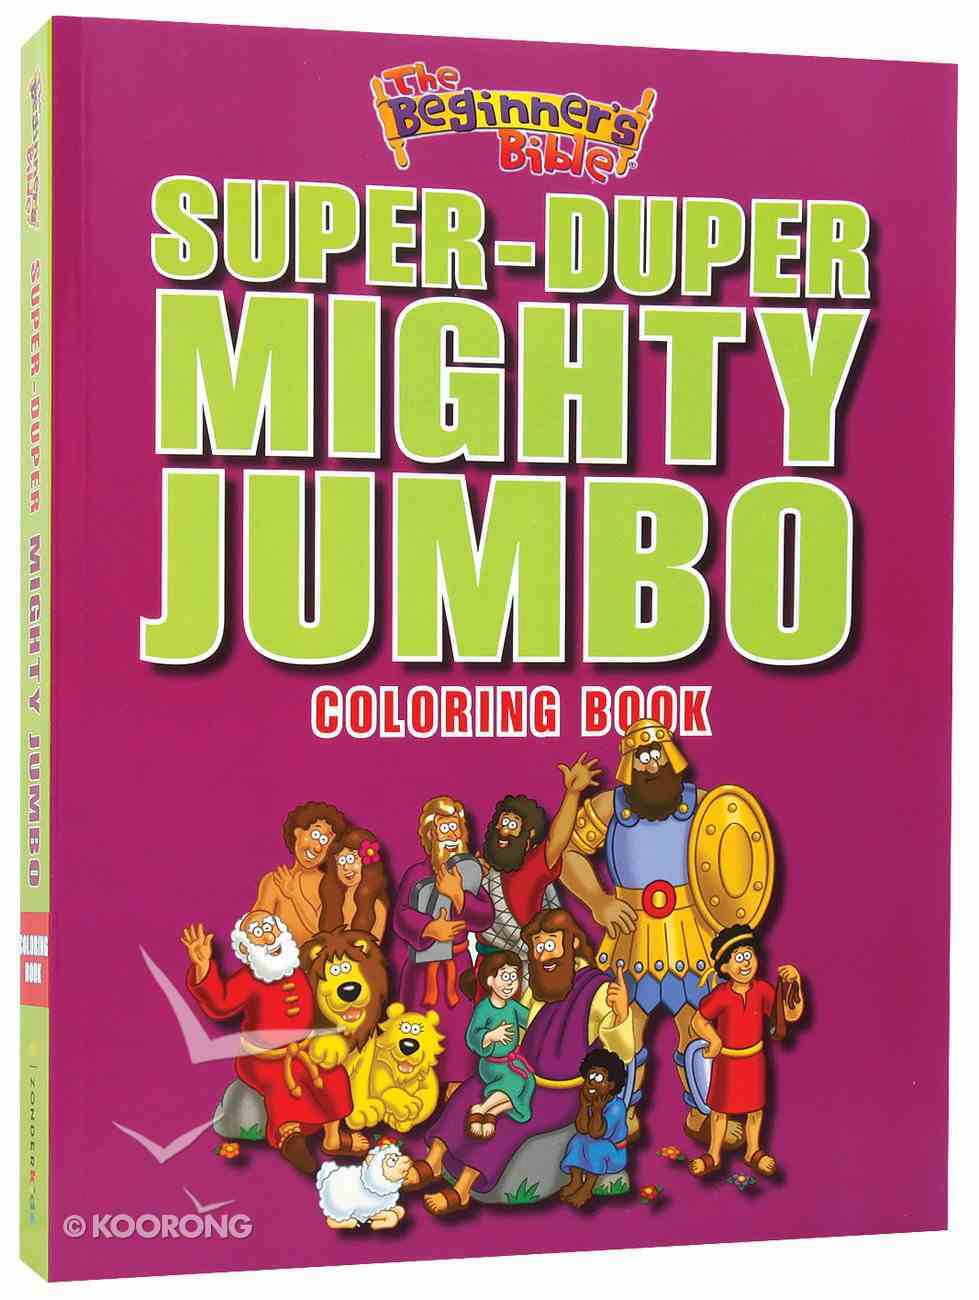 Beginner's Bible: Super-Duper, Mighty, Jumbo Colouring Book Paperback